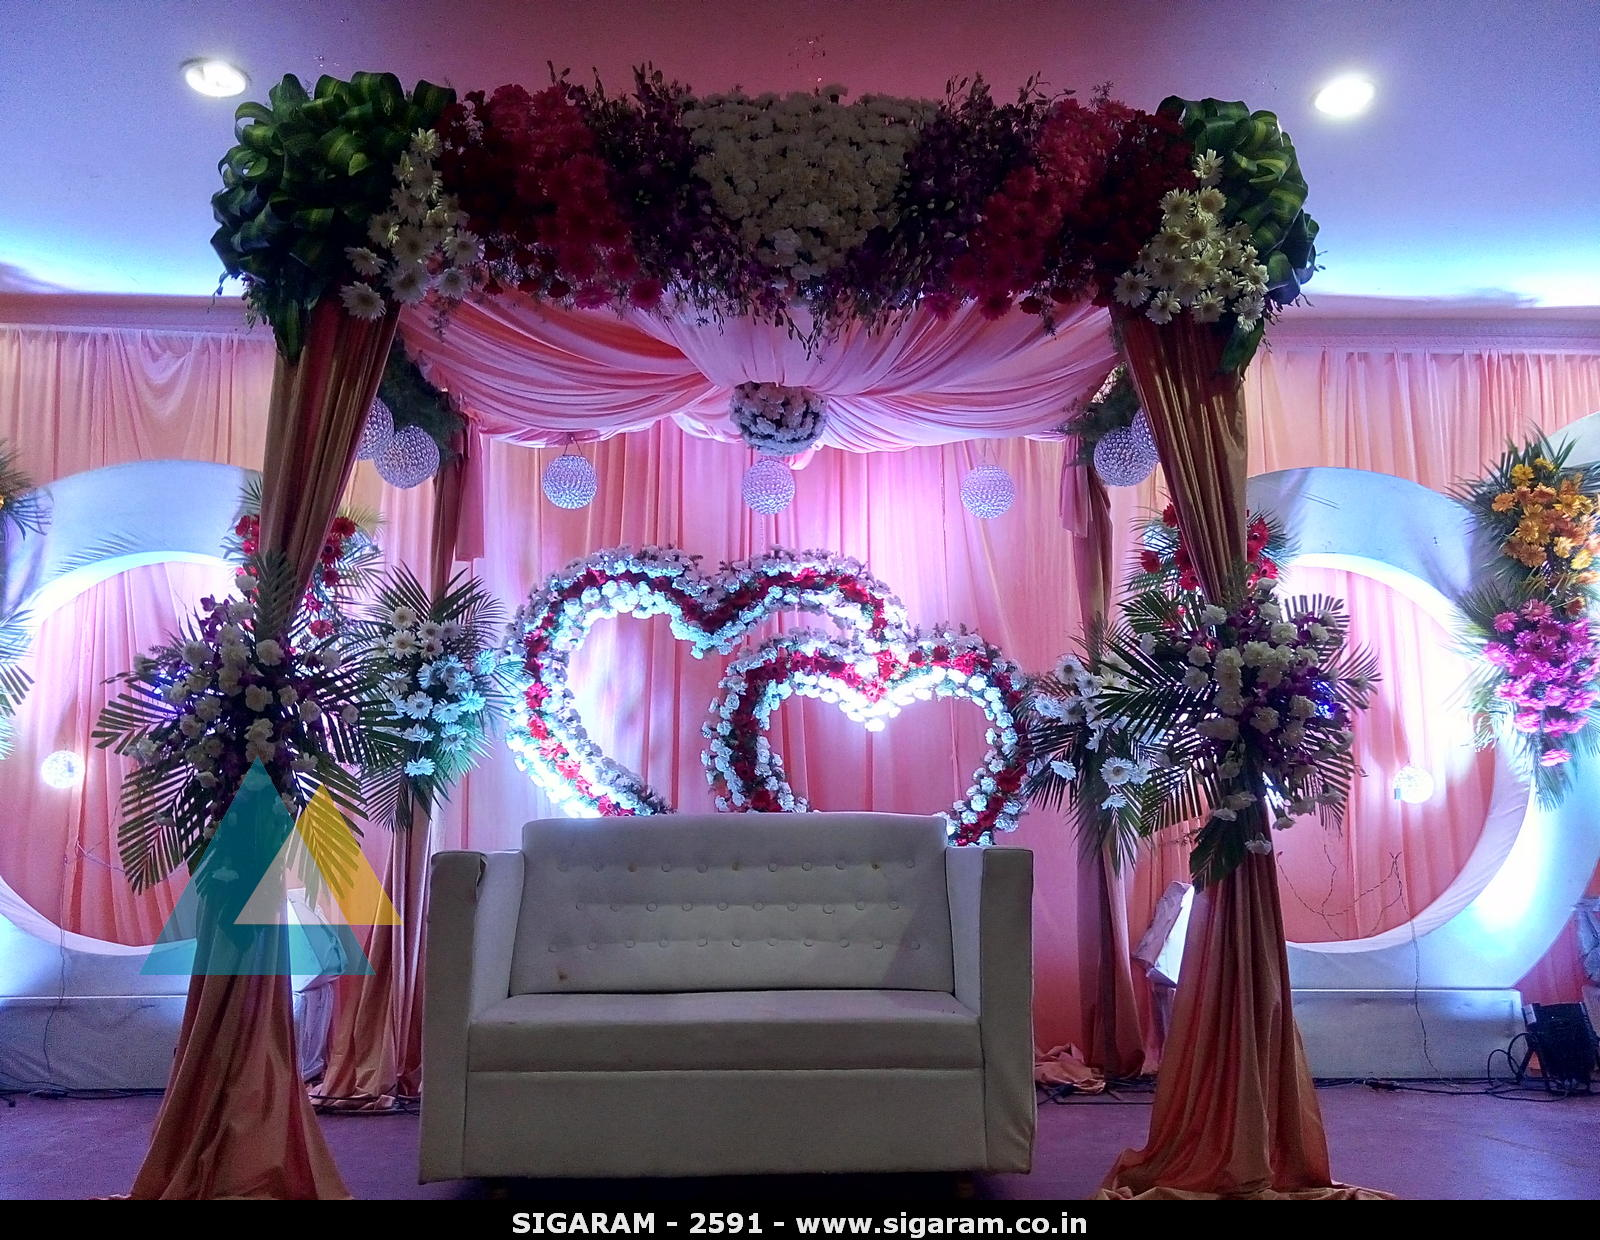 Wedding Reception Decoration At Subalakshmi Thirumana Mahal Cuddalore